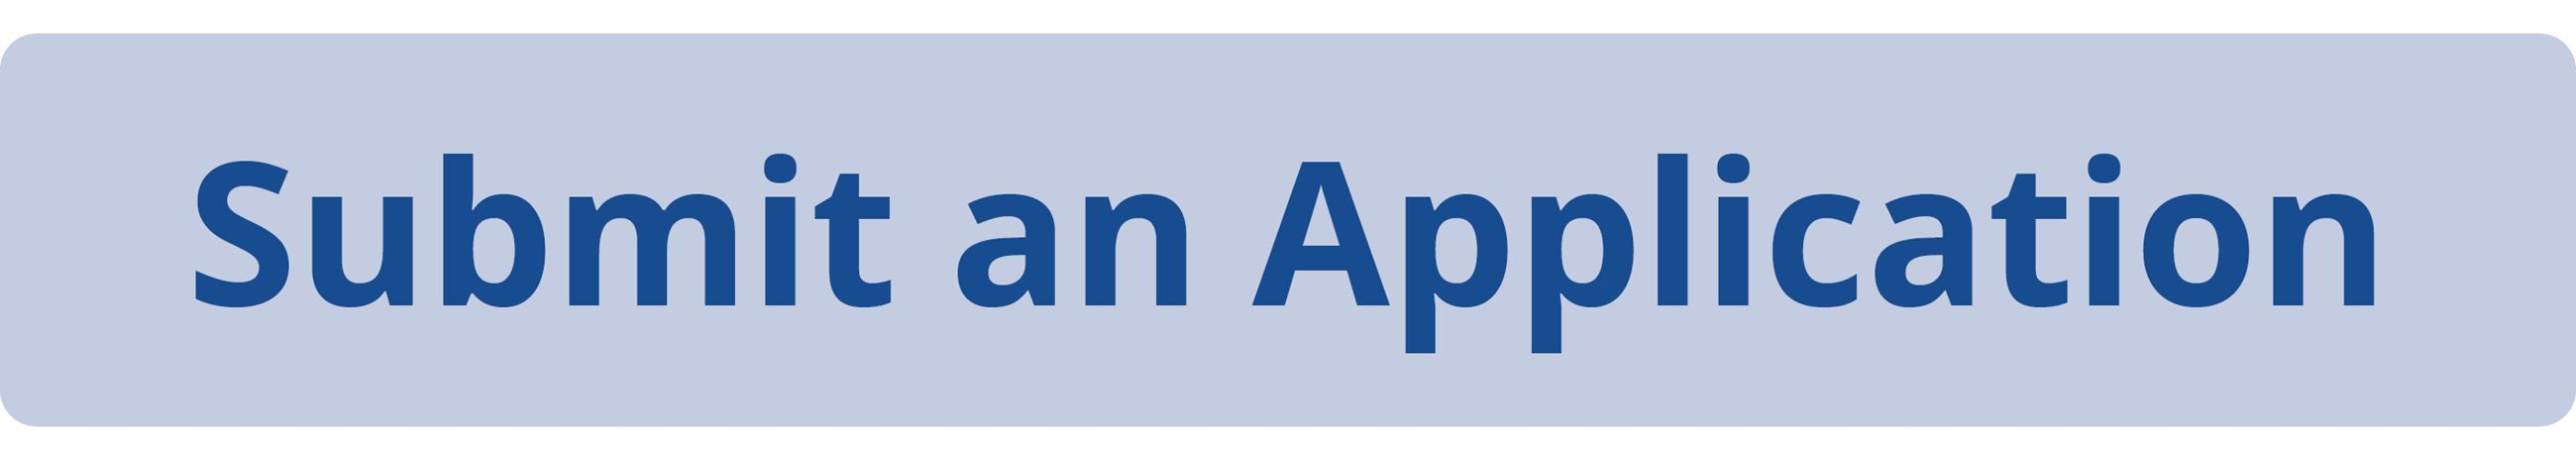 Submit and Application Button links to WFPL Volunteer Application